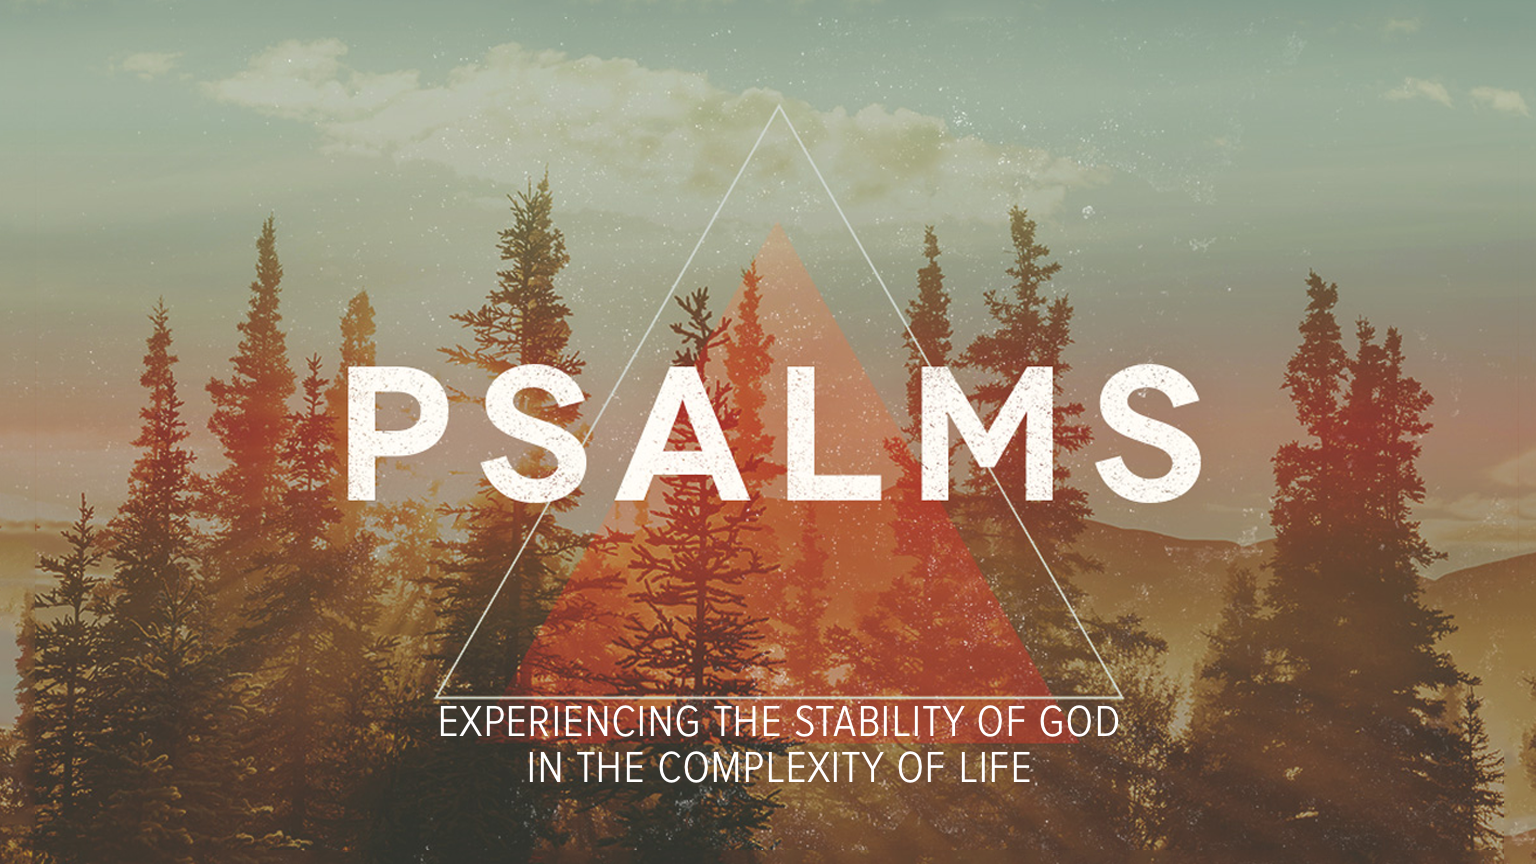 In these 8 weeks we will look at how we experience the stability of God in the complexity of life.